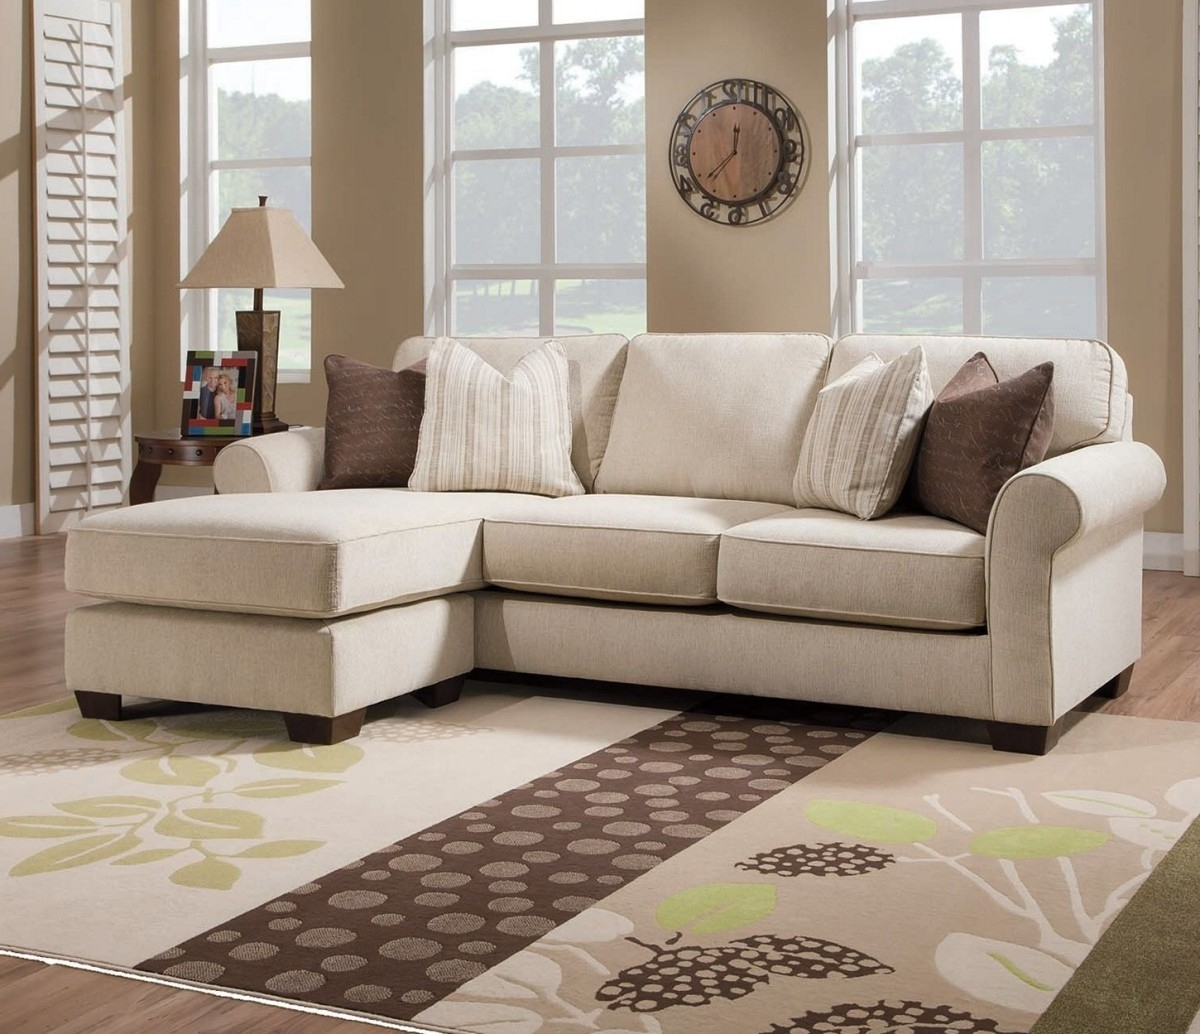 Most Popular Ethan Allen Charlotte Nc Modern Italian Leather Sofa Ethan Allen Regarding Sectional Sofas In Charlotte Nc (View 6 of 15)